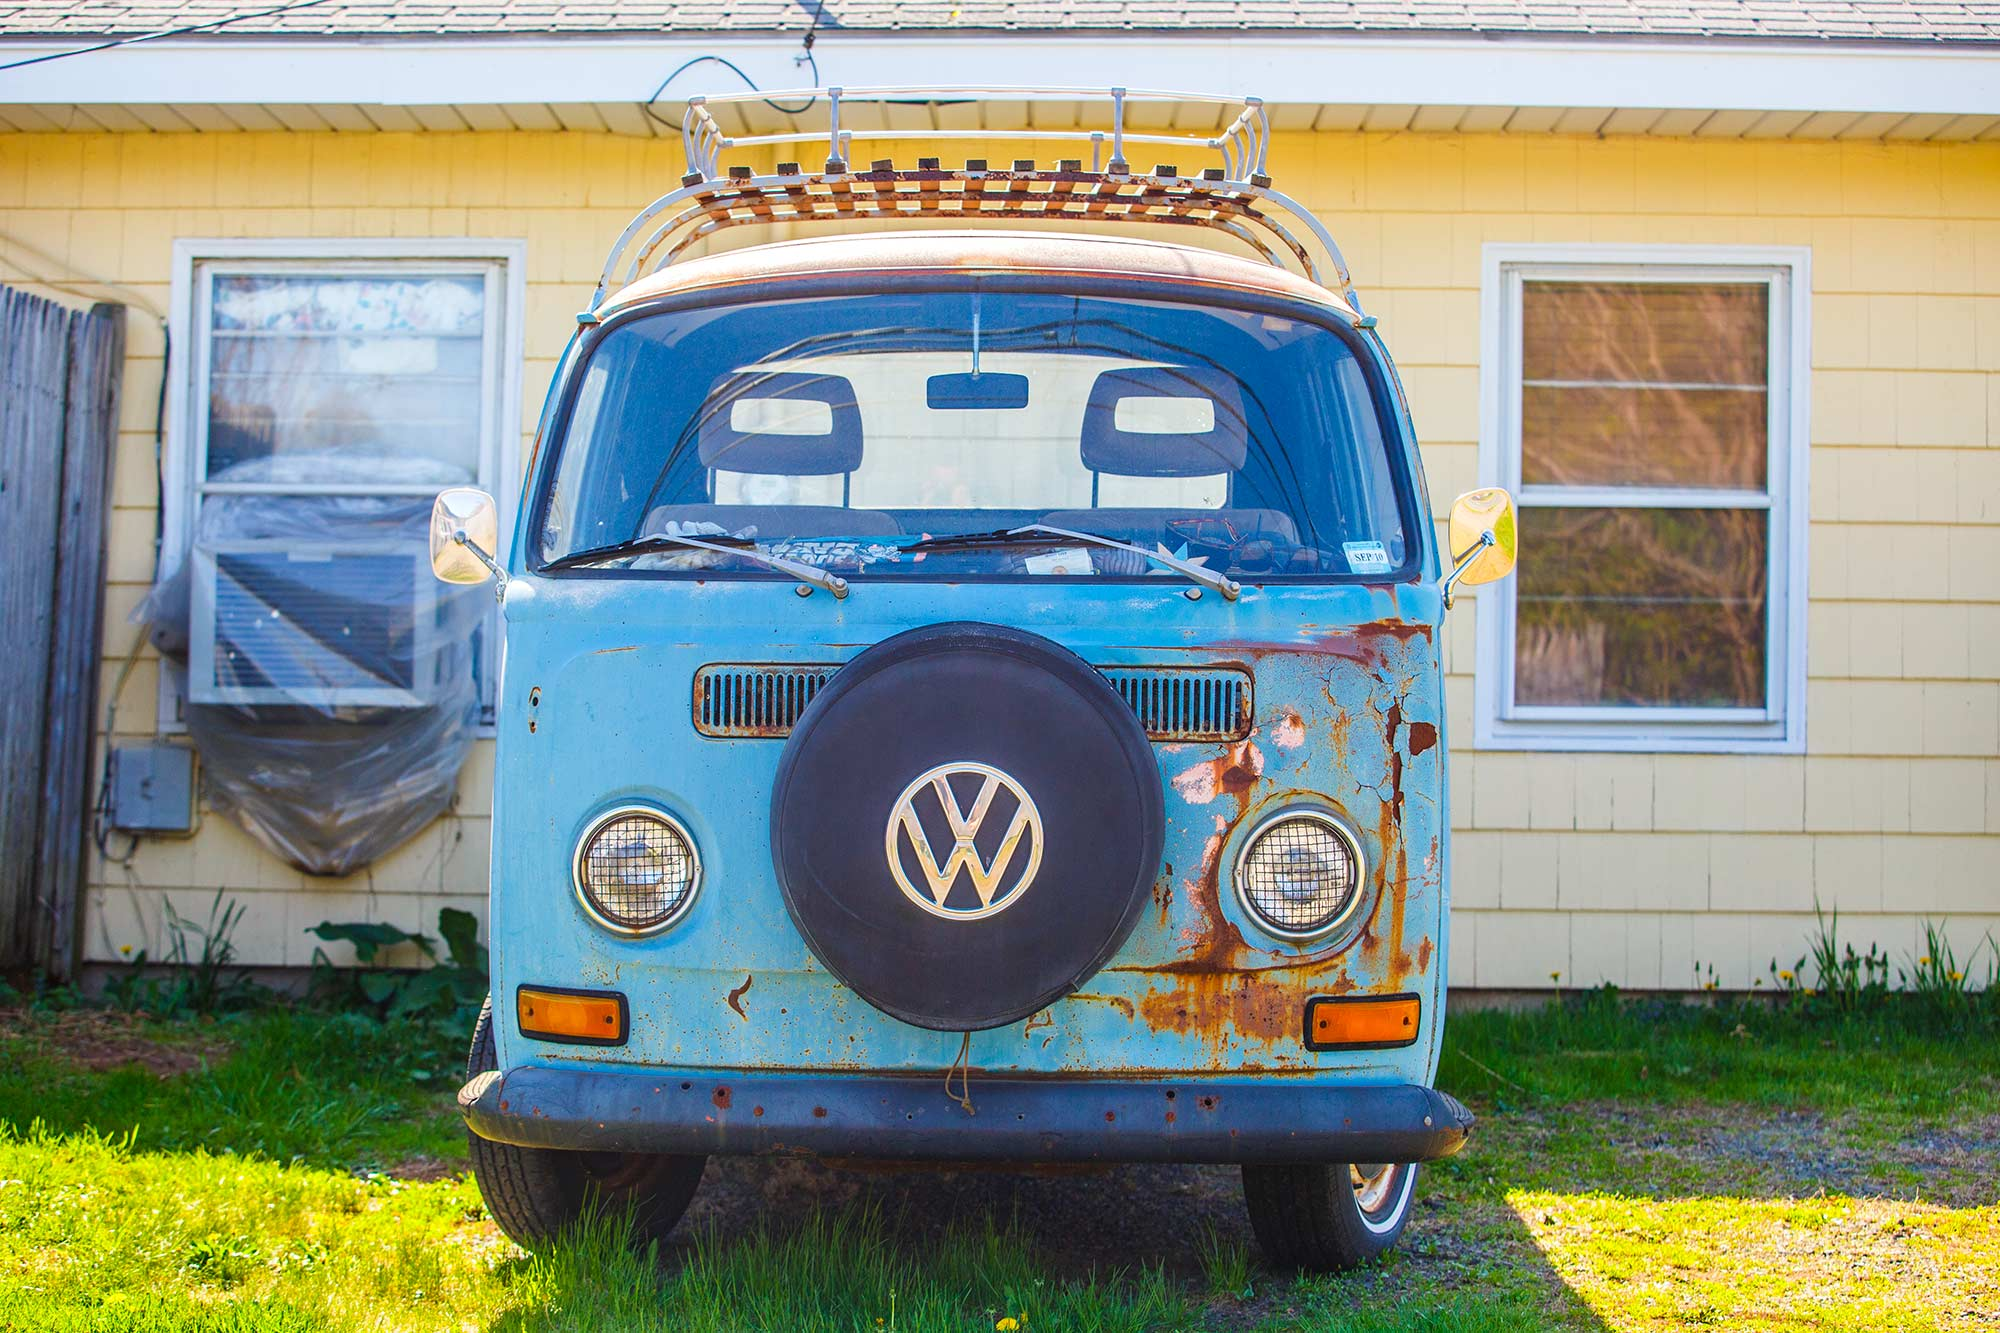 VW Bus, Newington, CT - 5/7/15